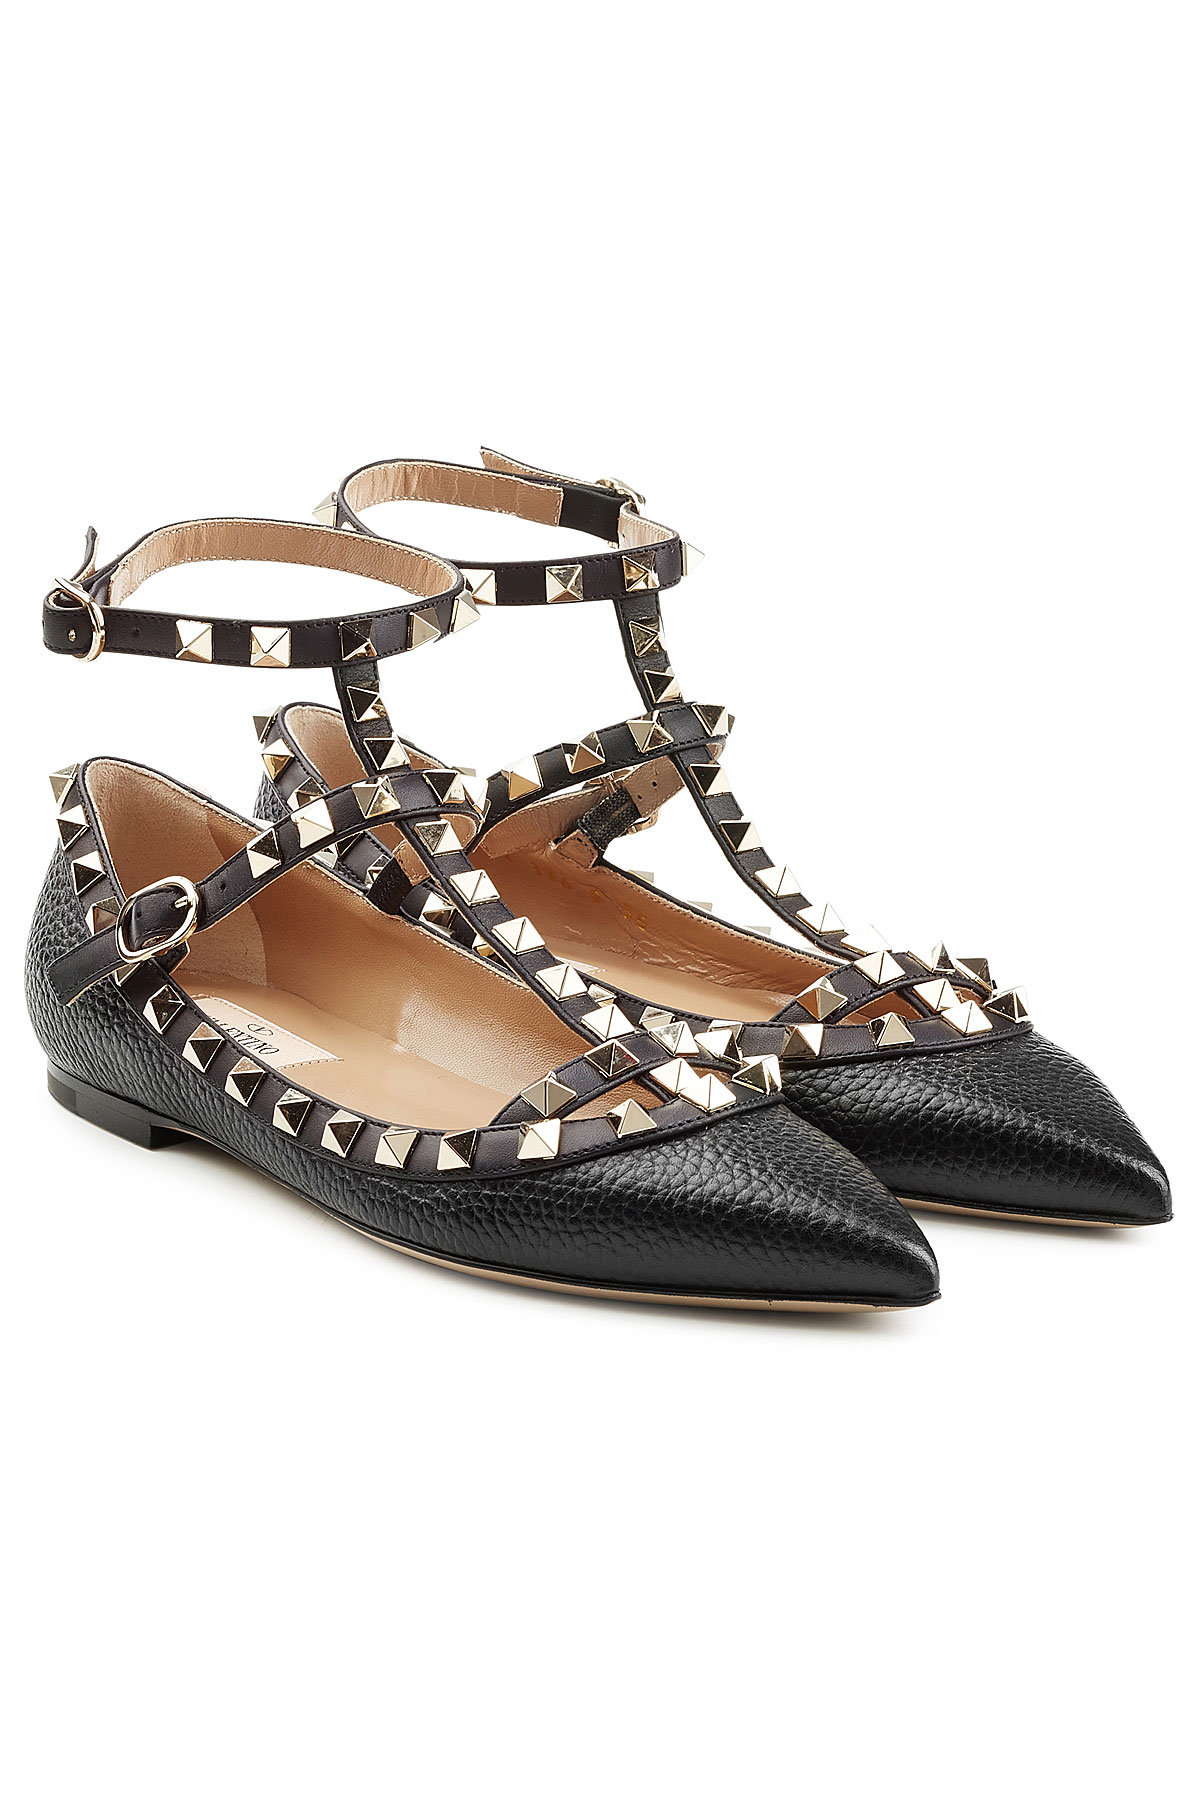 Valentino Rockstud Textured Leather Ballerinas Gr. IT 39 RgwQ4Ydvm